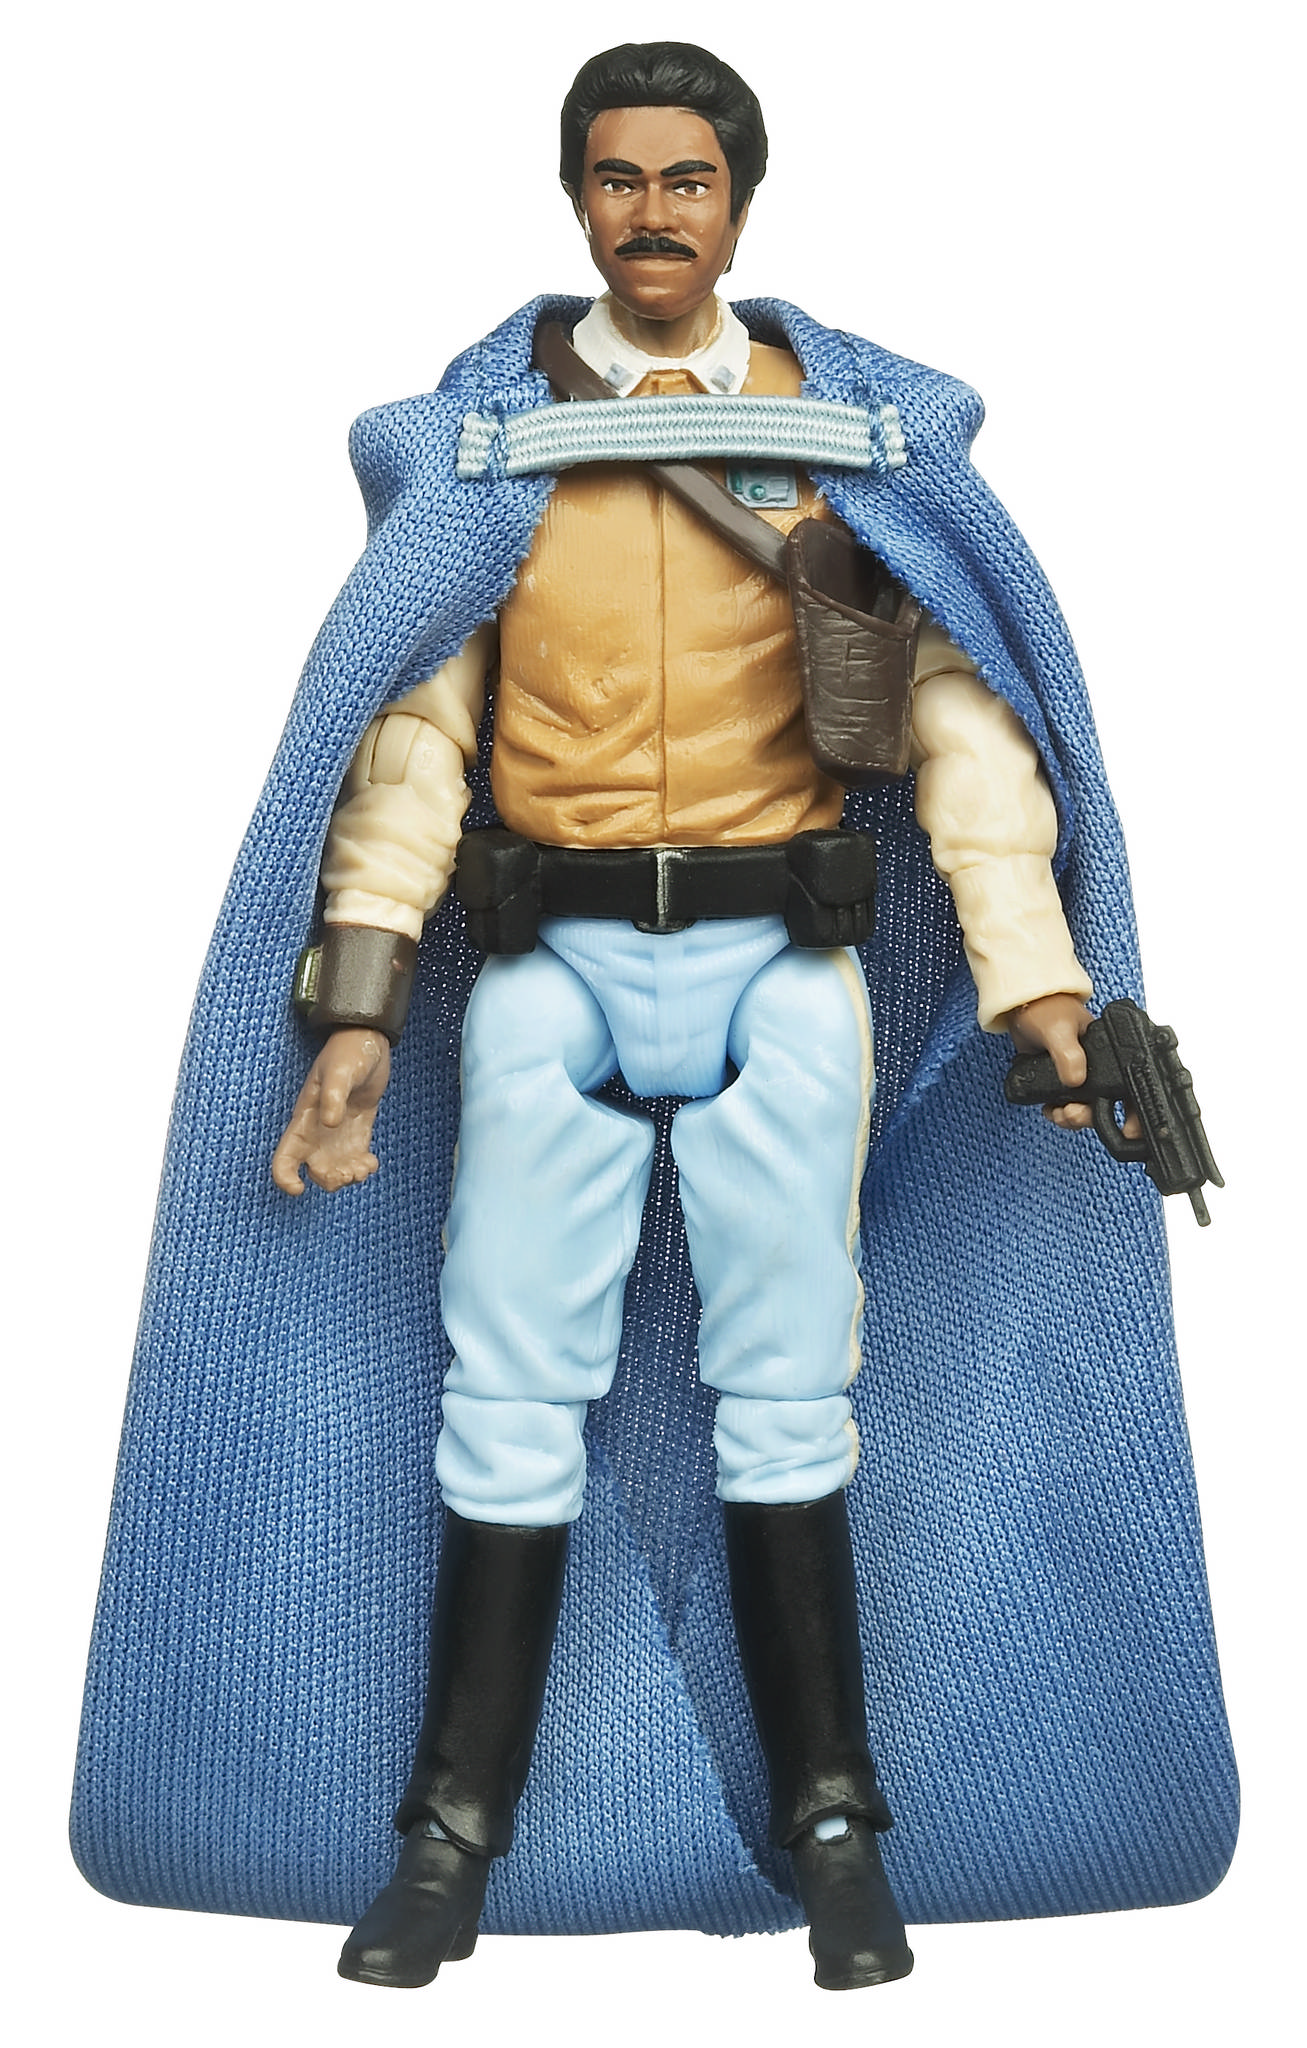 STAR WARS THE VINTAGE COLLECTION 3.75 INCH GENERAL LANDO CALRISSIAN Figure